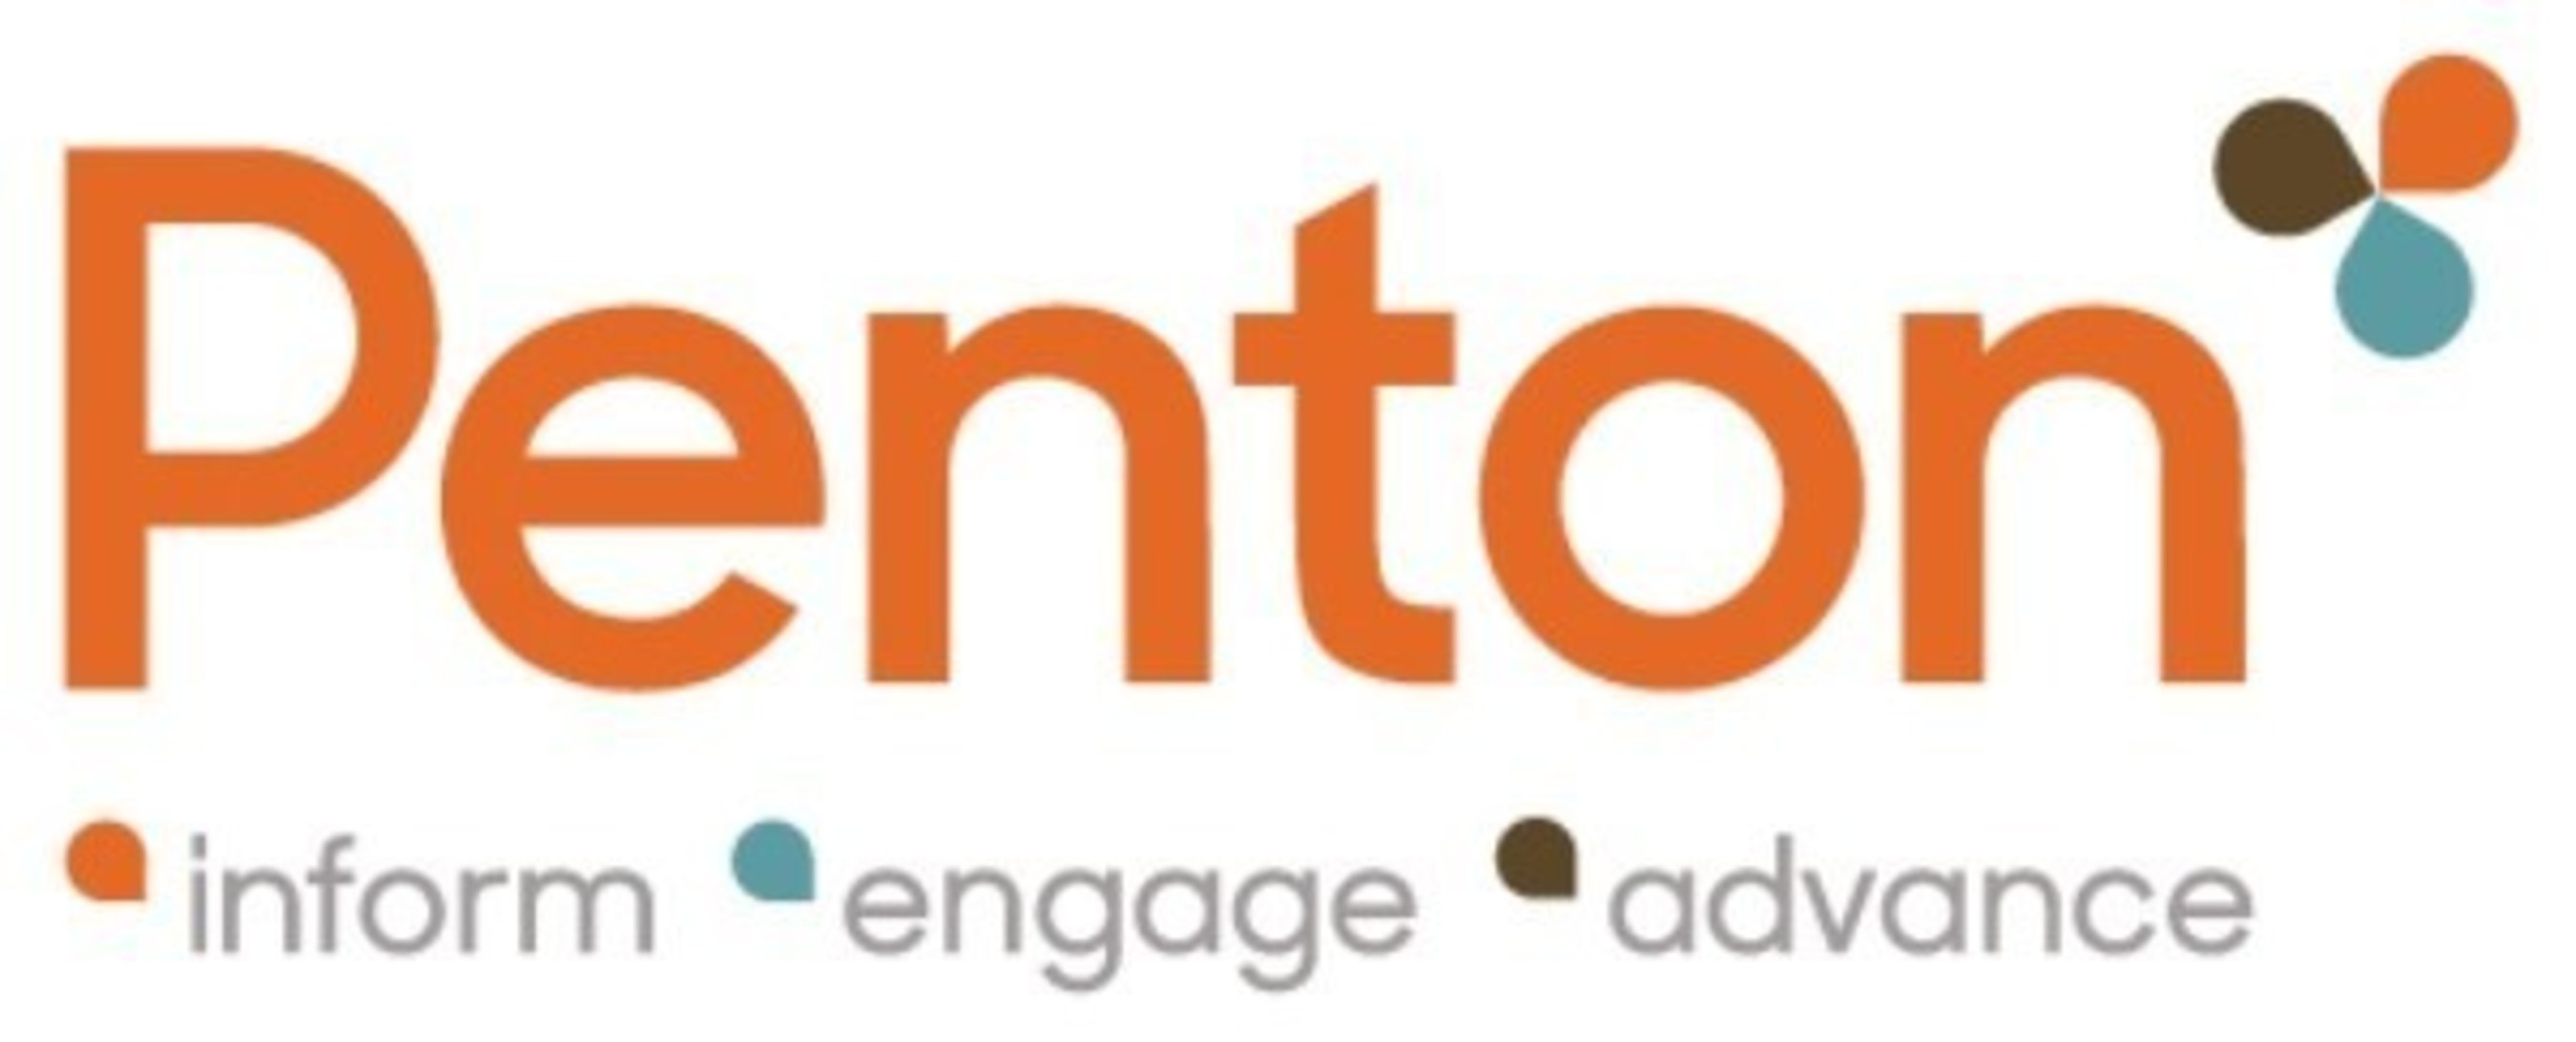 Penton Acquires iNET Interactive, A Leading Event And Digital Information Company Serving The